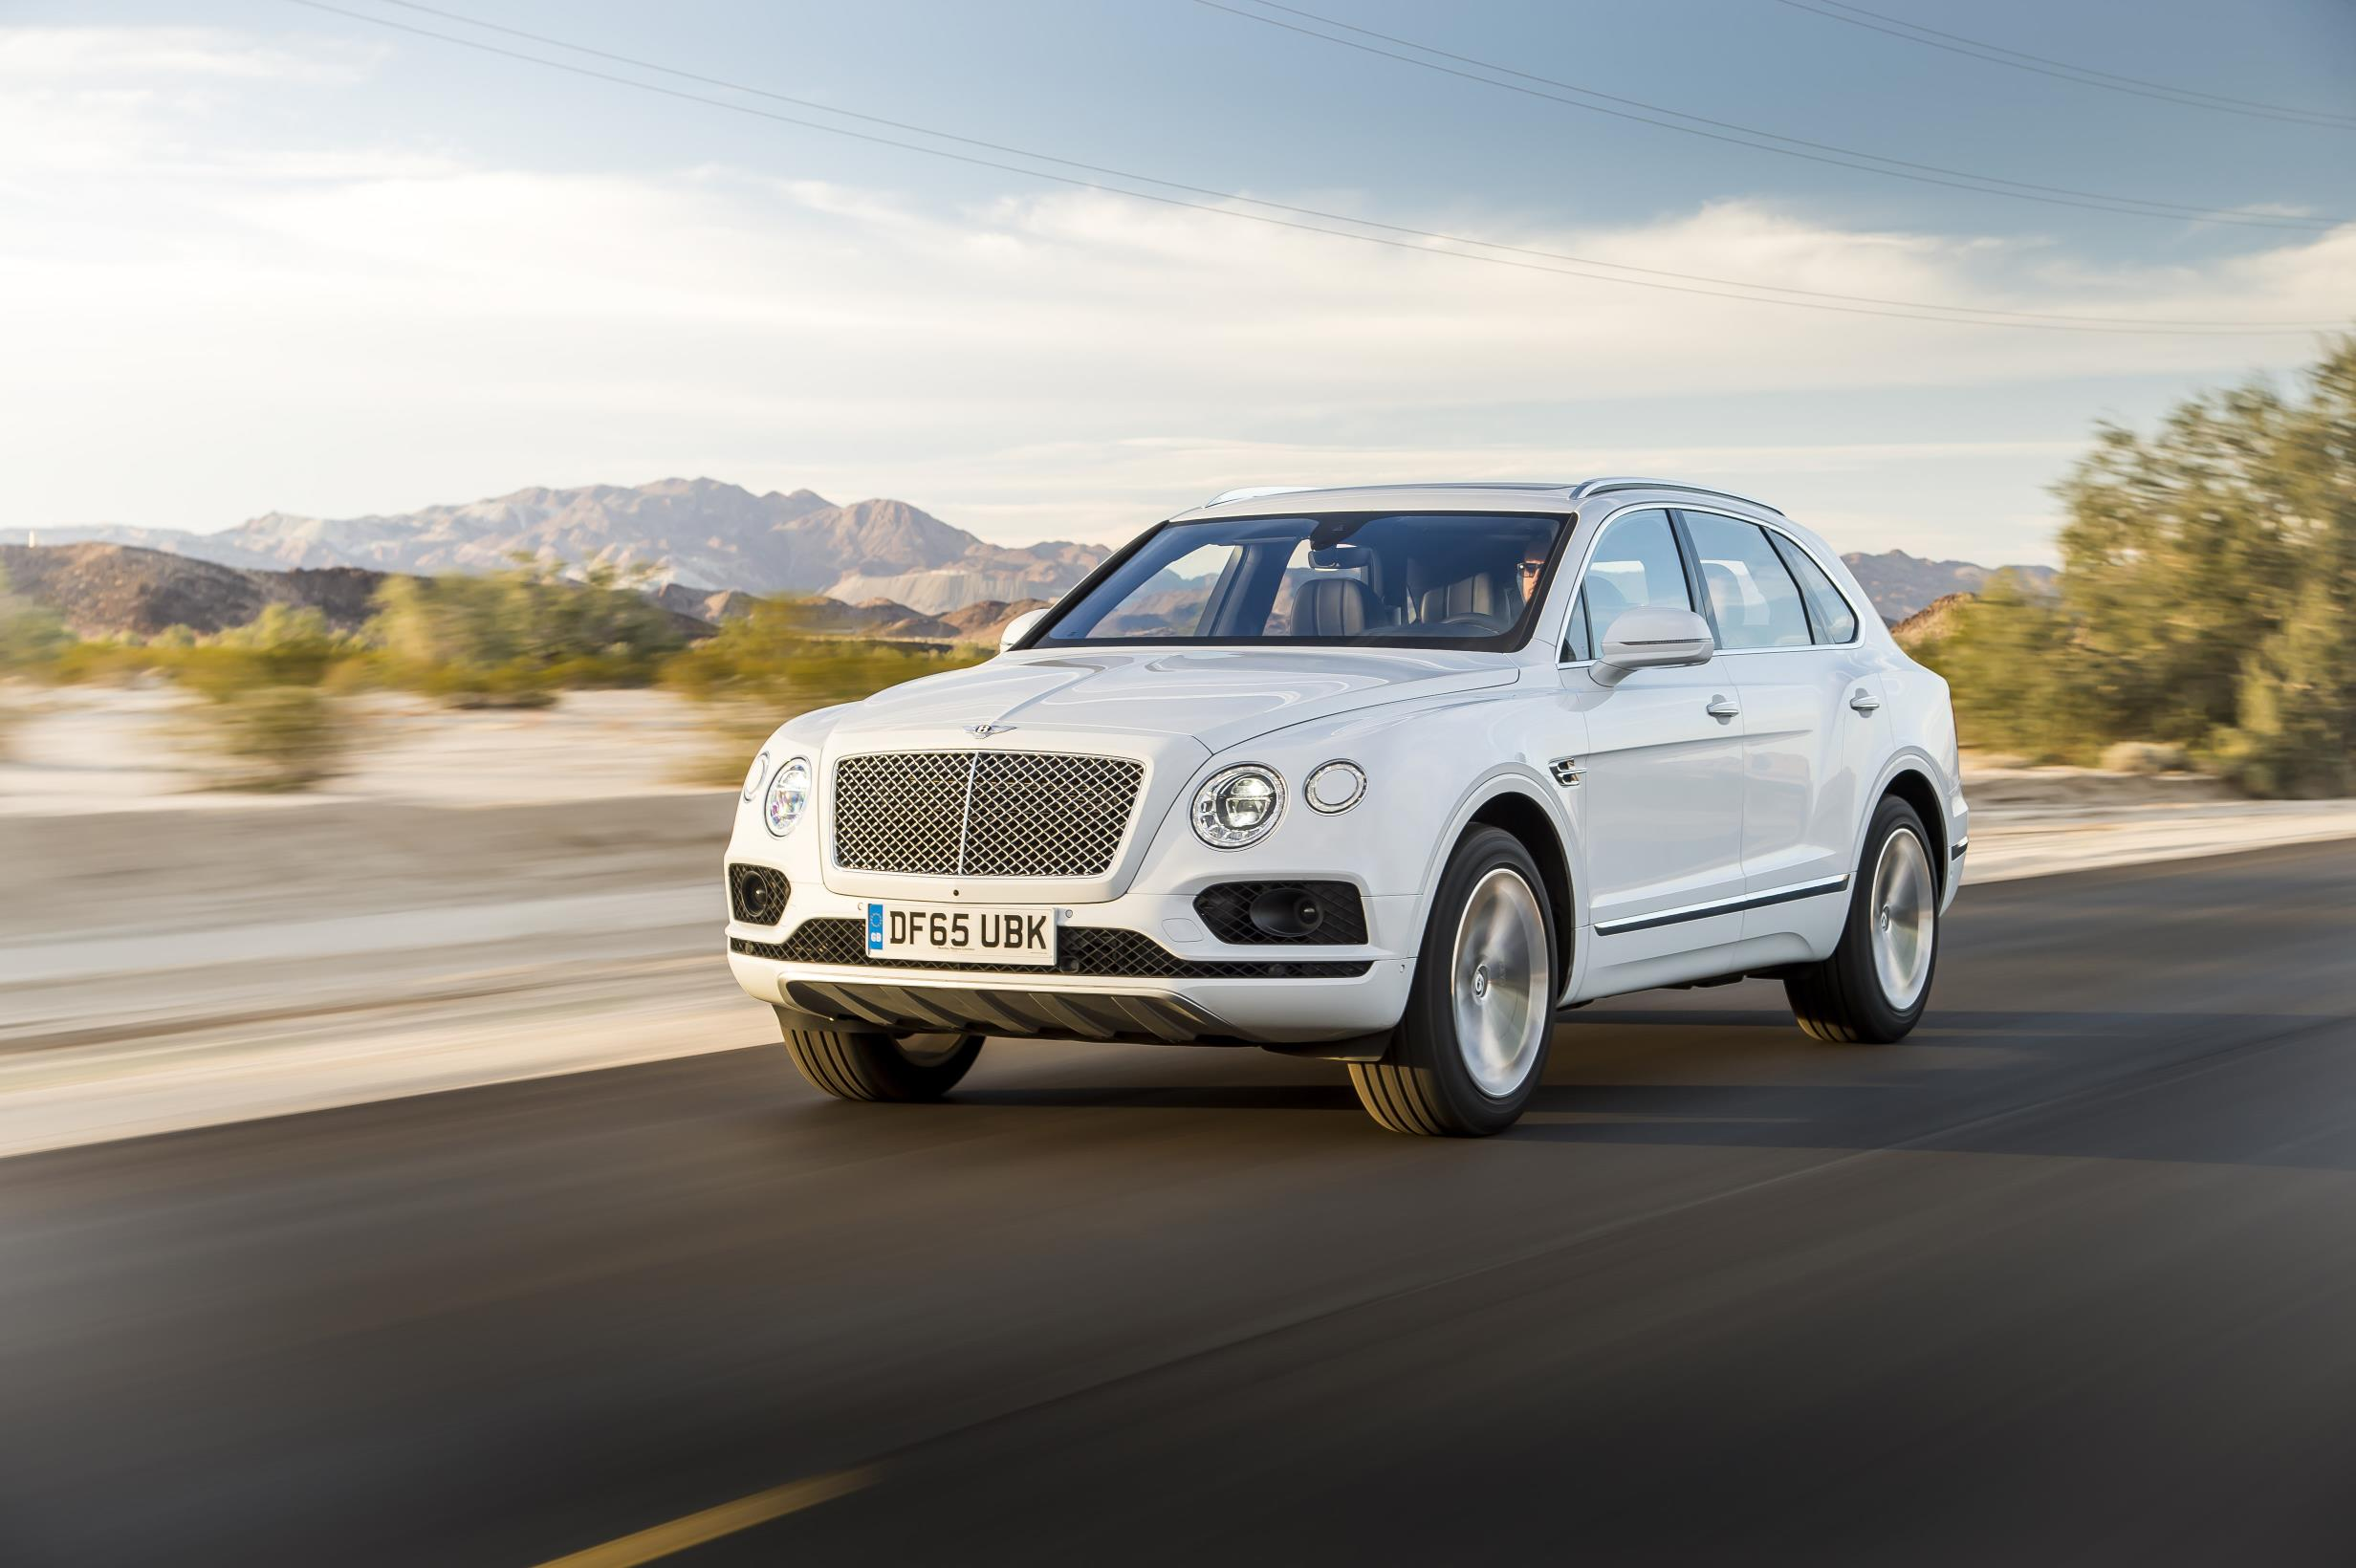 bentley bentayga named suv of the year by robb report uk just british. Black Bedroom Furniture Sets. Home Design Ideas